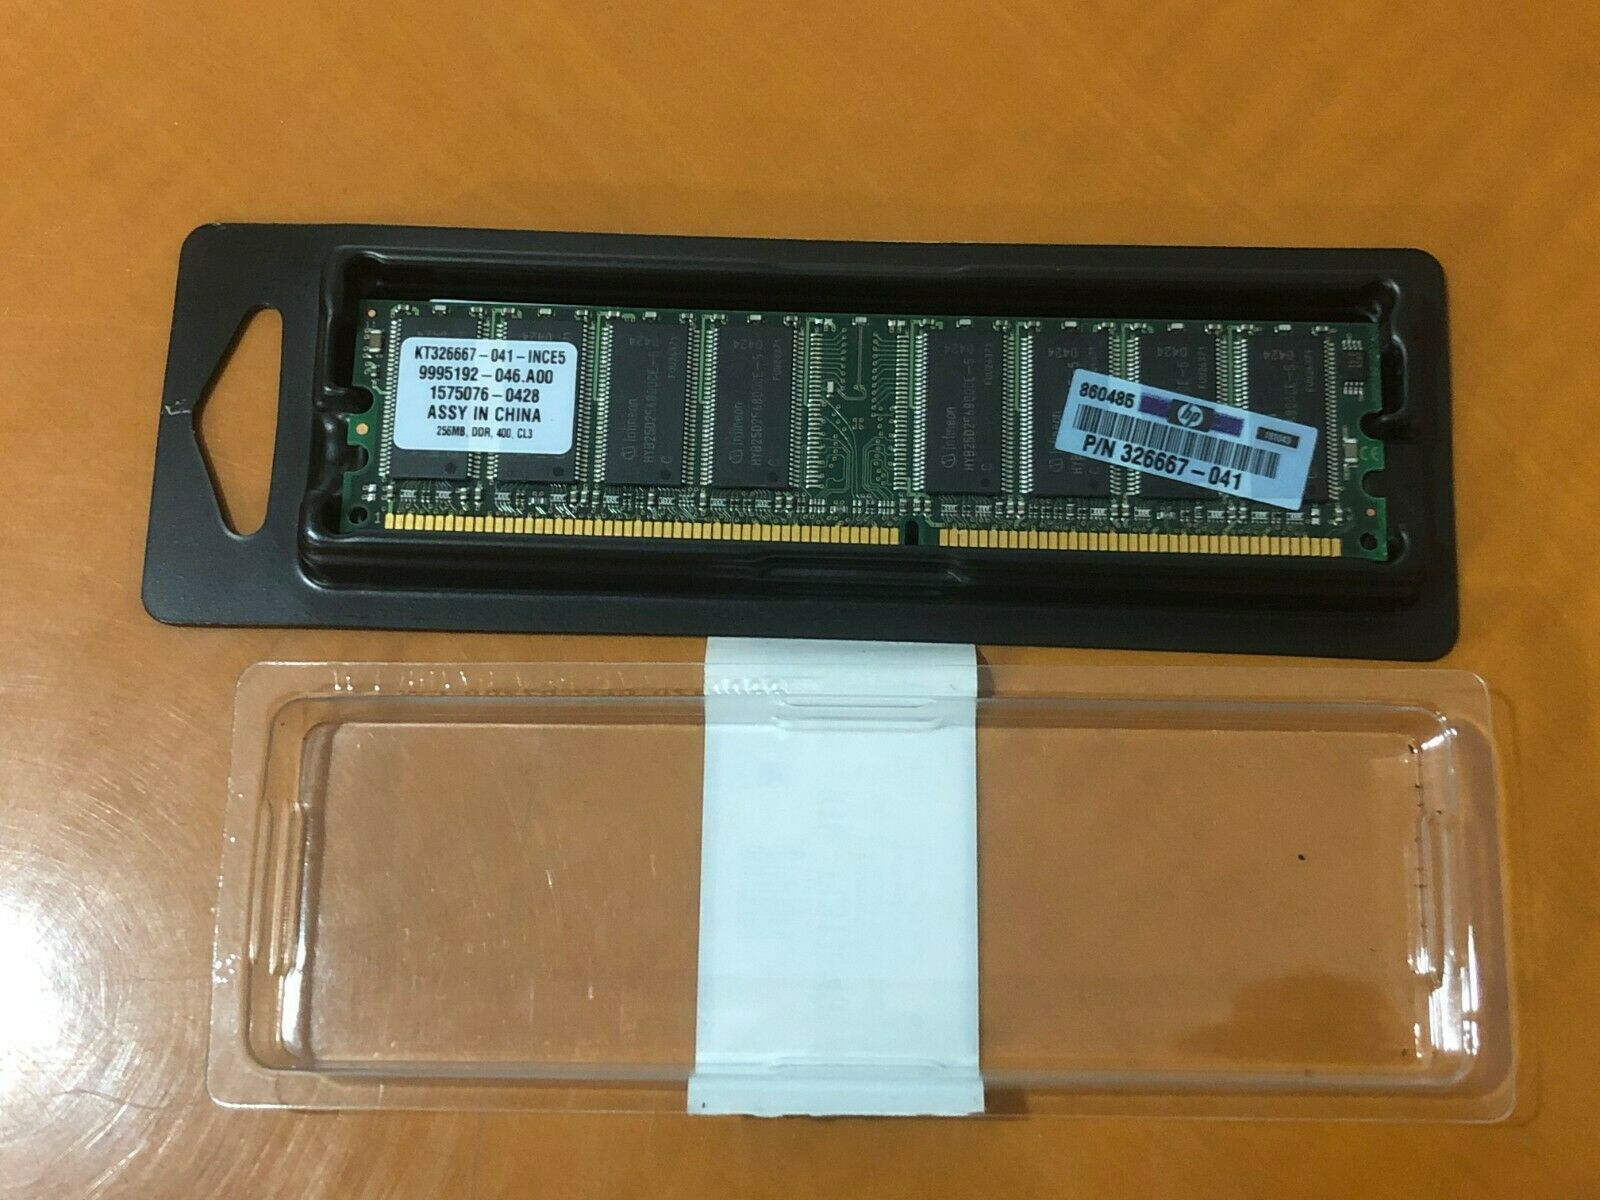 Primary image for Kingston KT326667-041-INCE5 256MB DDR 400 CL3 P/N 326667-041 Memory RAM